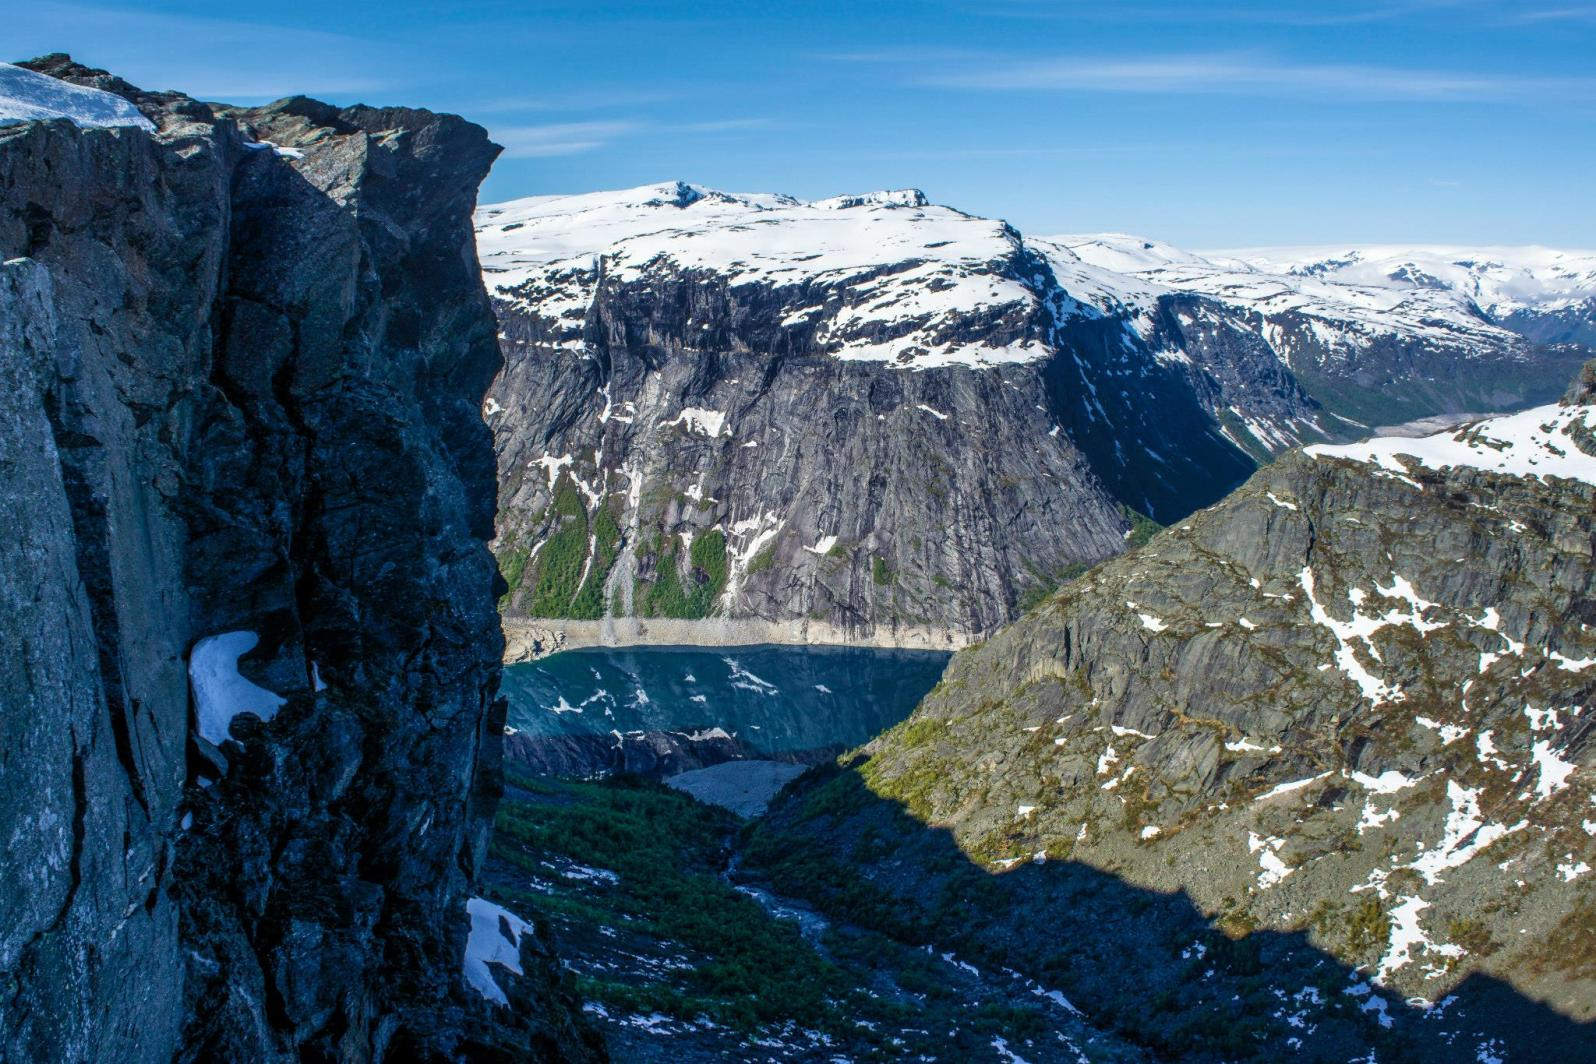 Amazing views, and we haven't got to the Trolltunga yet!